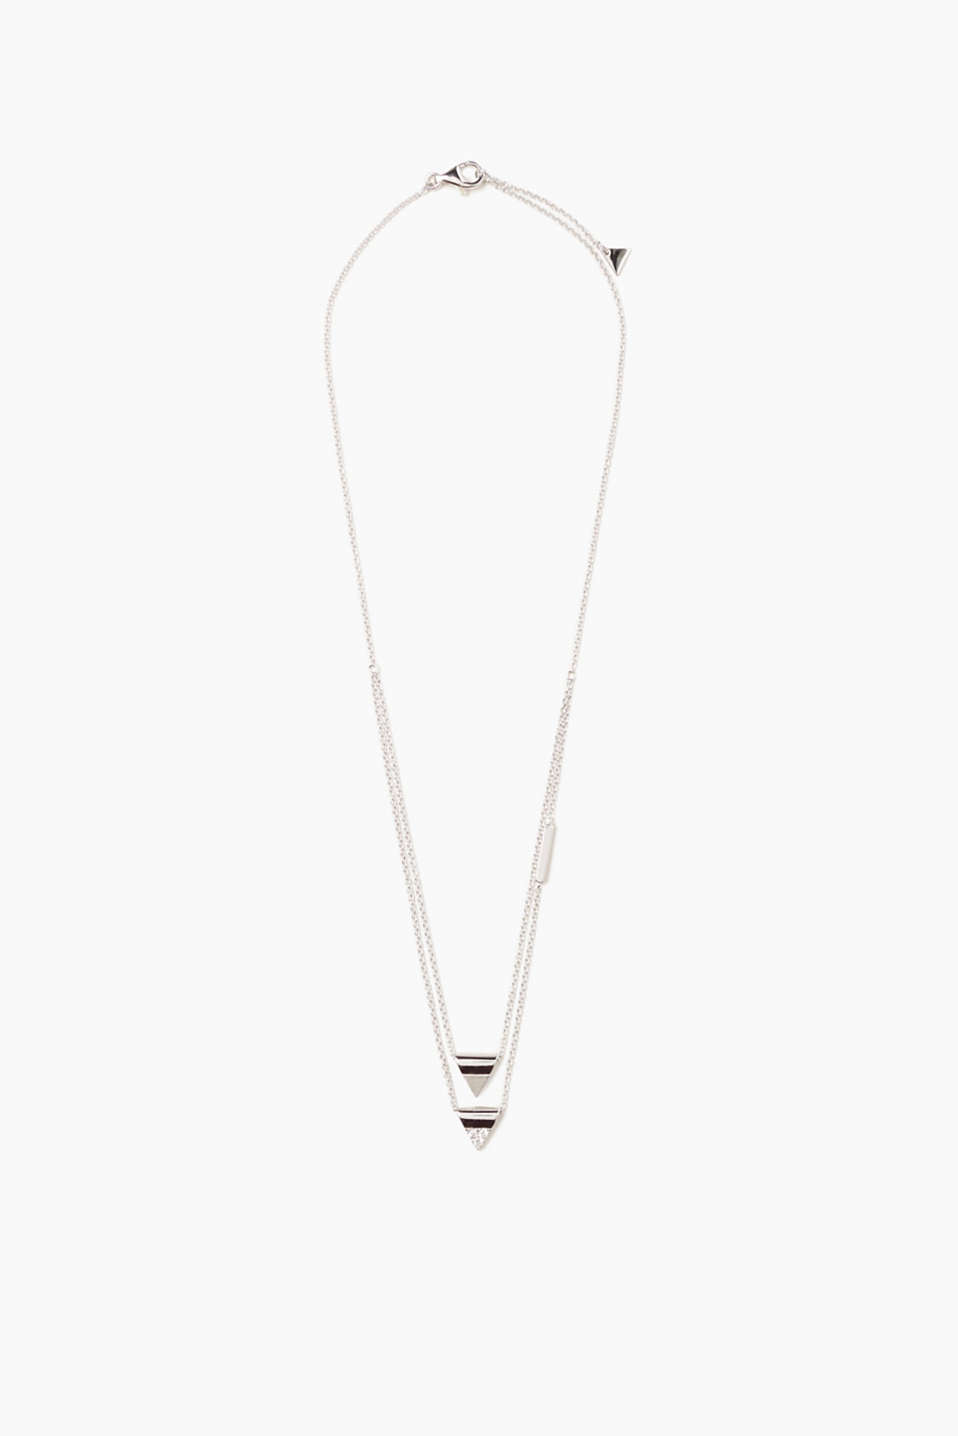 Esprit - Fine sterling silver necklace with pendants